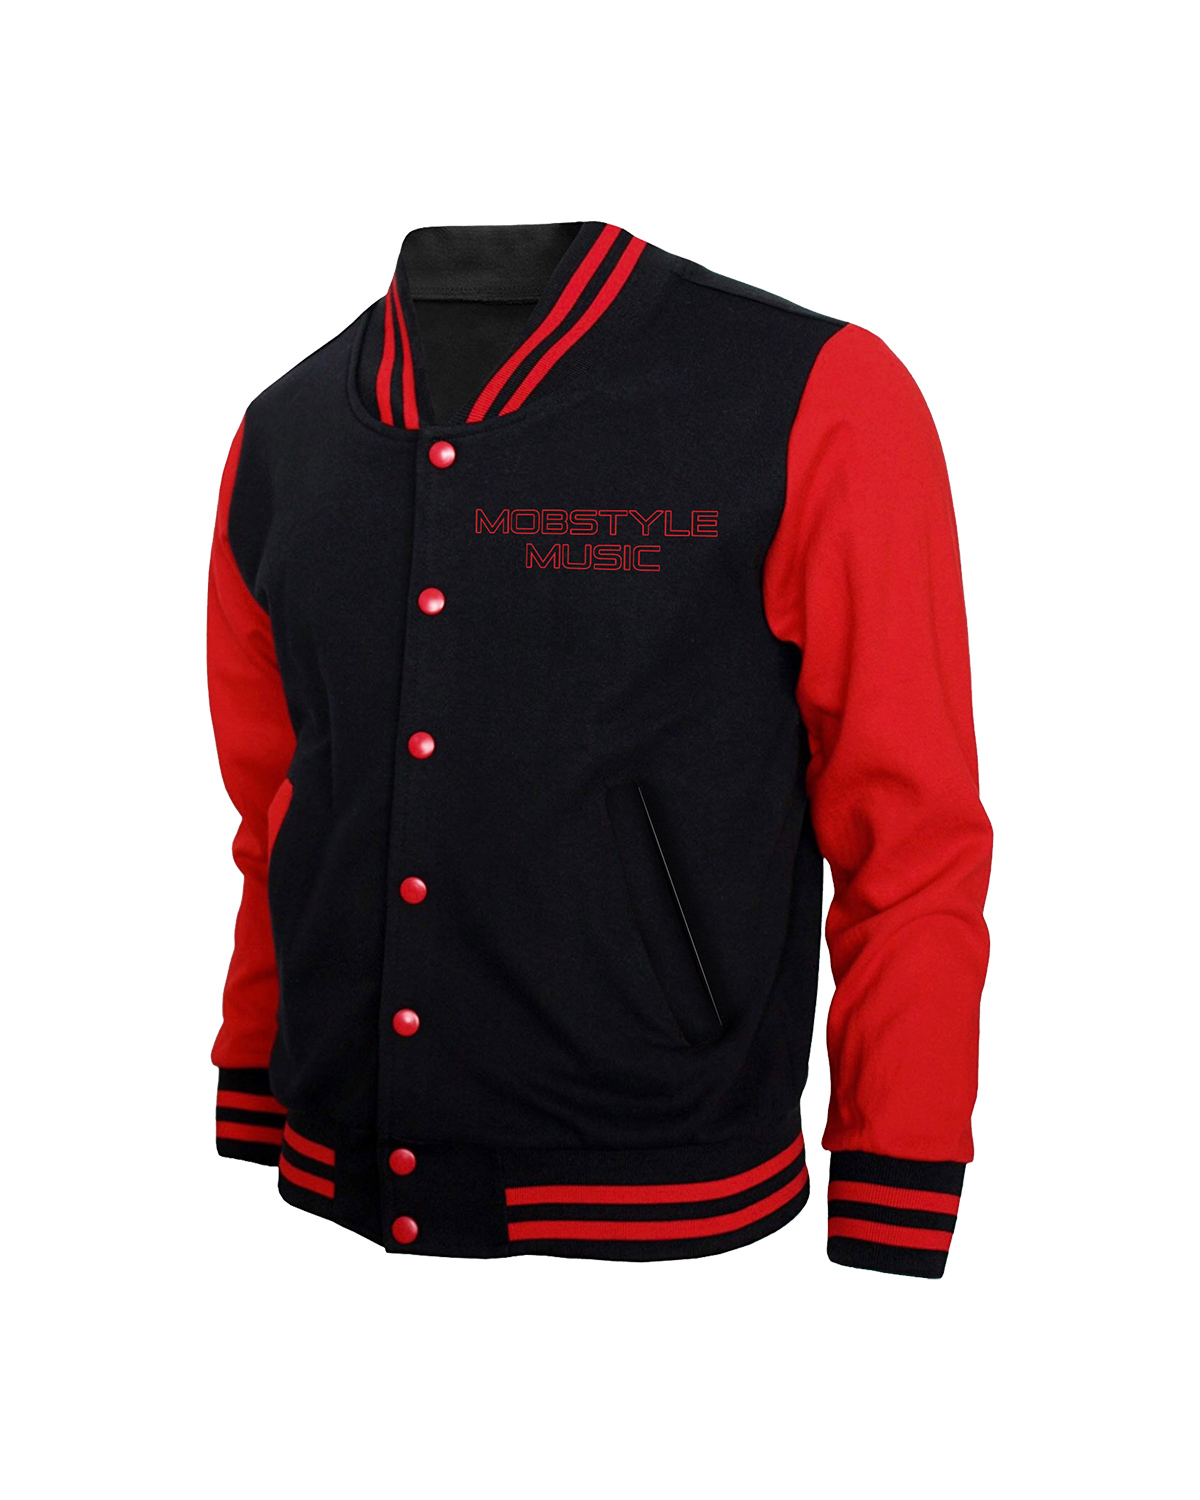 Mobstyle Music Varsity Coat